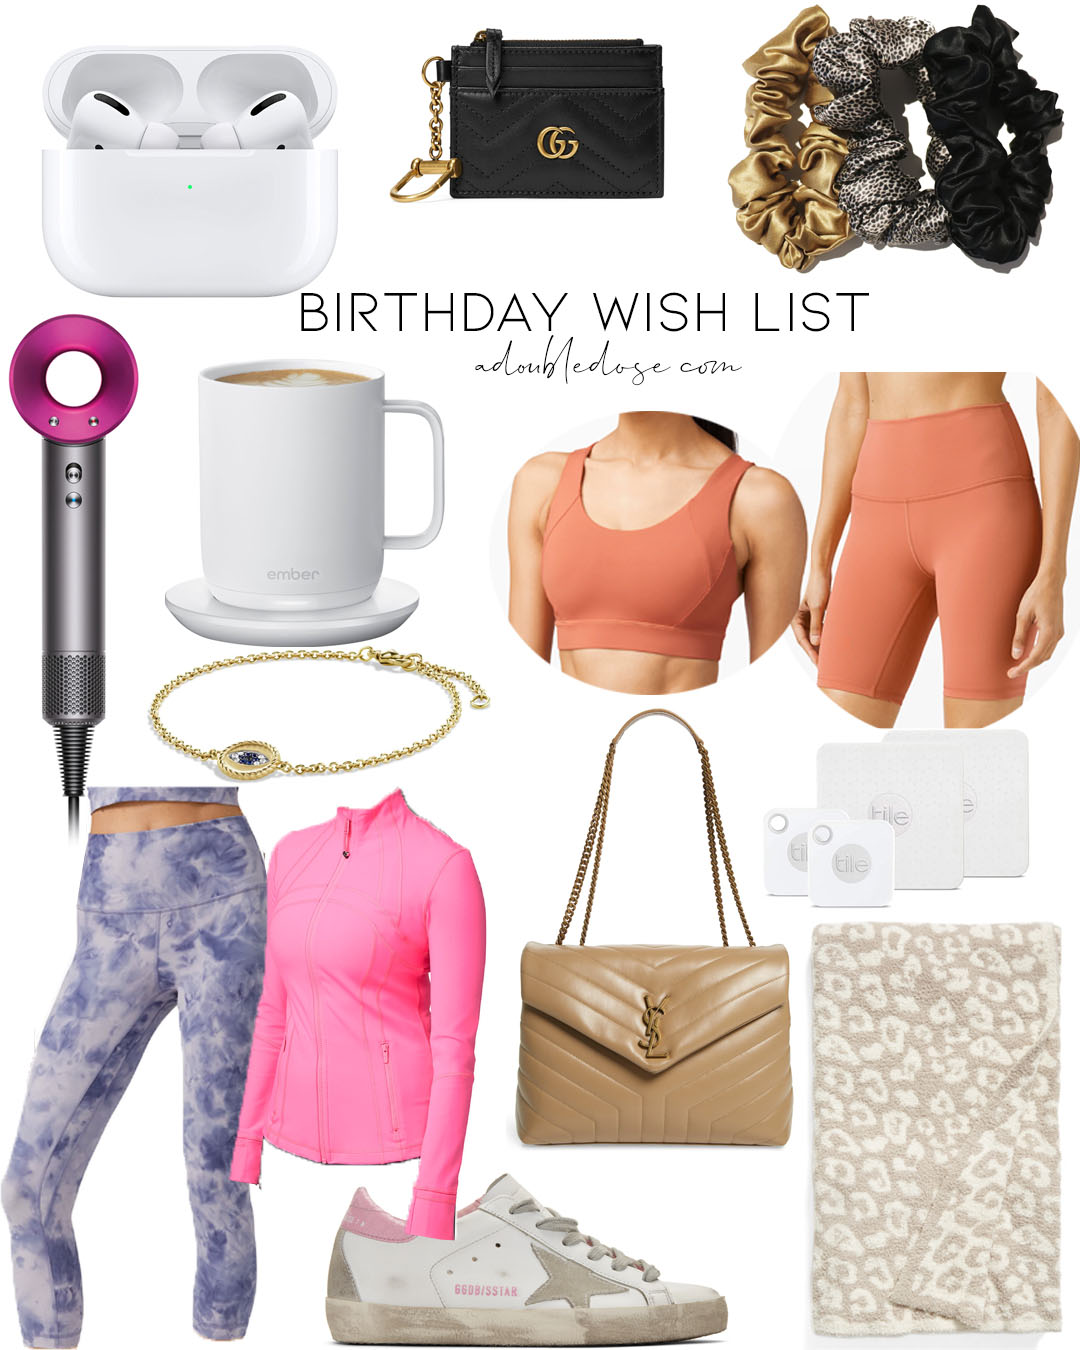 our 2020 birthday wish list: dyson hair dryer, lululemon align shorts, ember temperature controlled mug, silk scrunchies | adoubledose.com